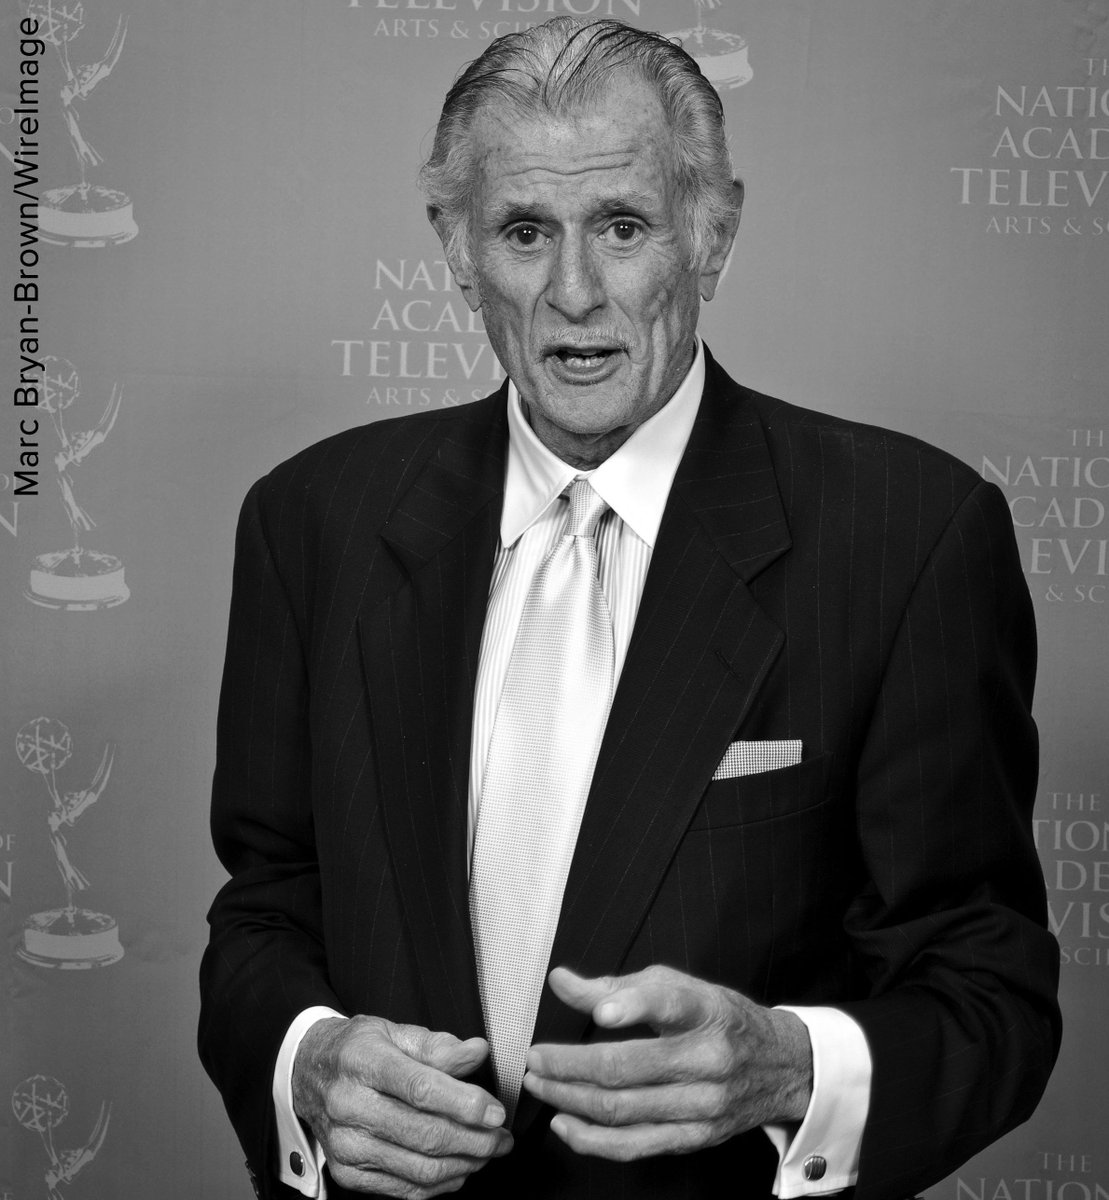 Award-winning sports writer and commentator Frank Deford has died at age 78, family says.